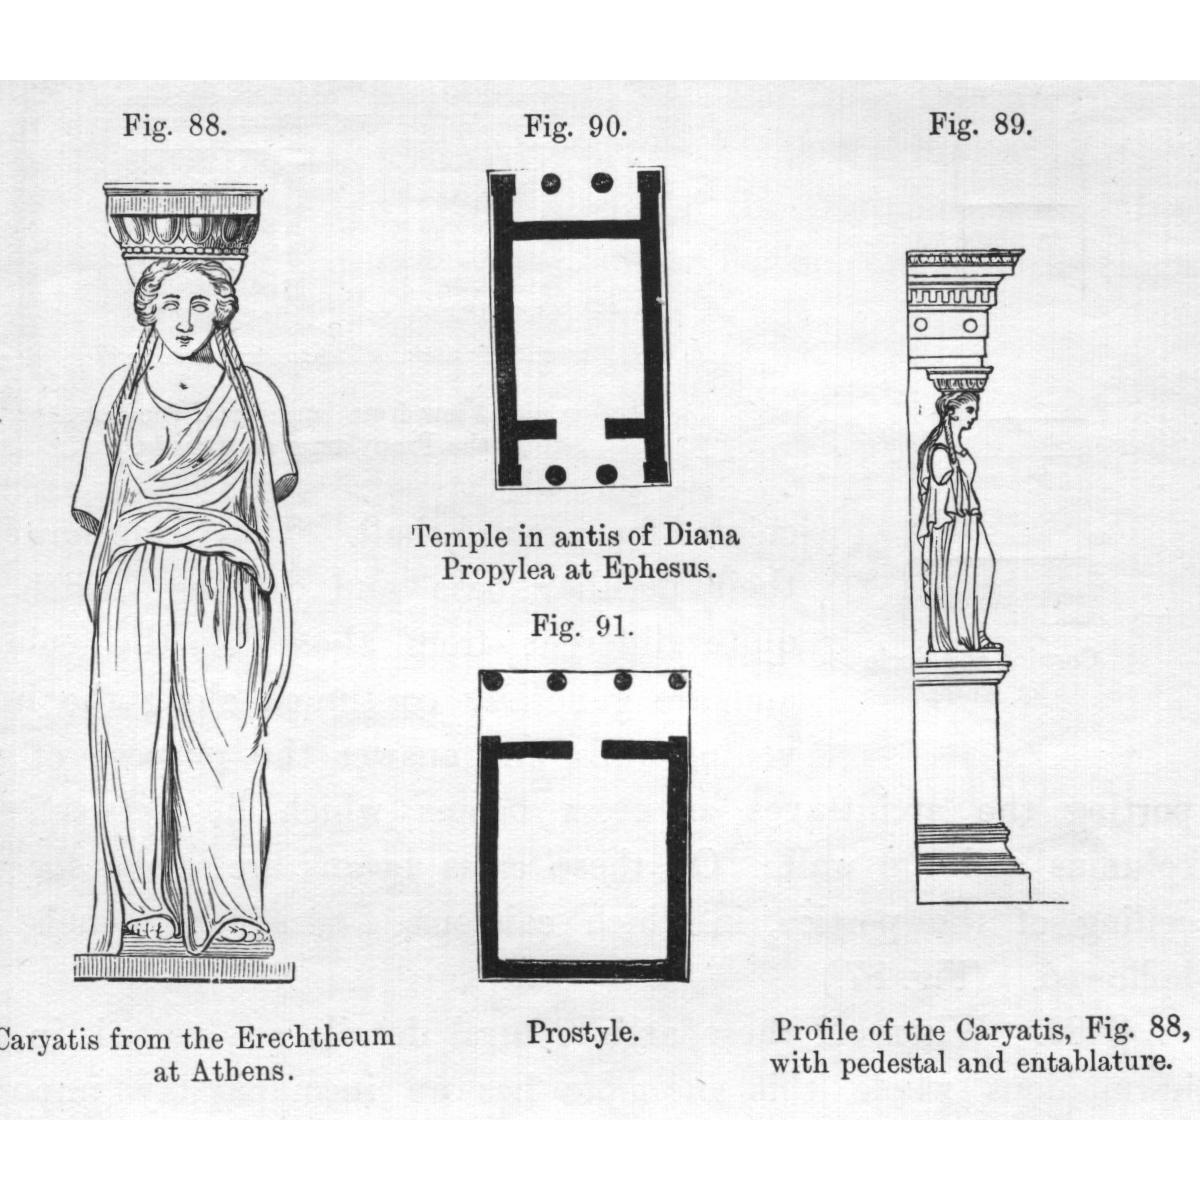 An architectural rendering featuring a caryatid that inspired the four porches of statues on The Field Museum.